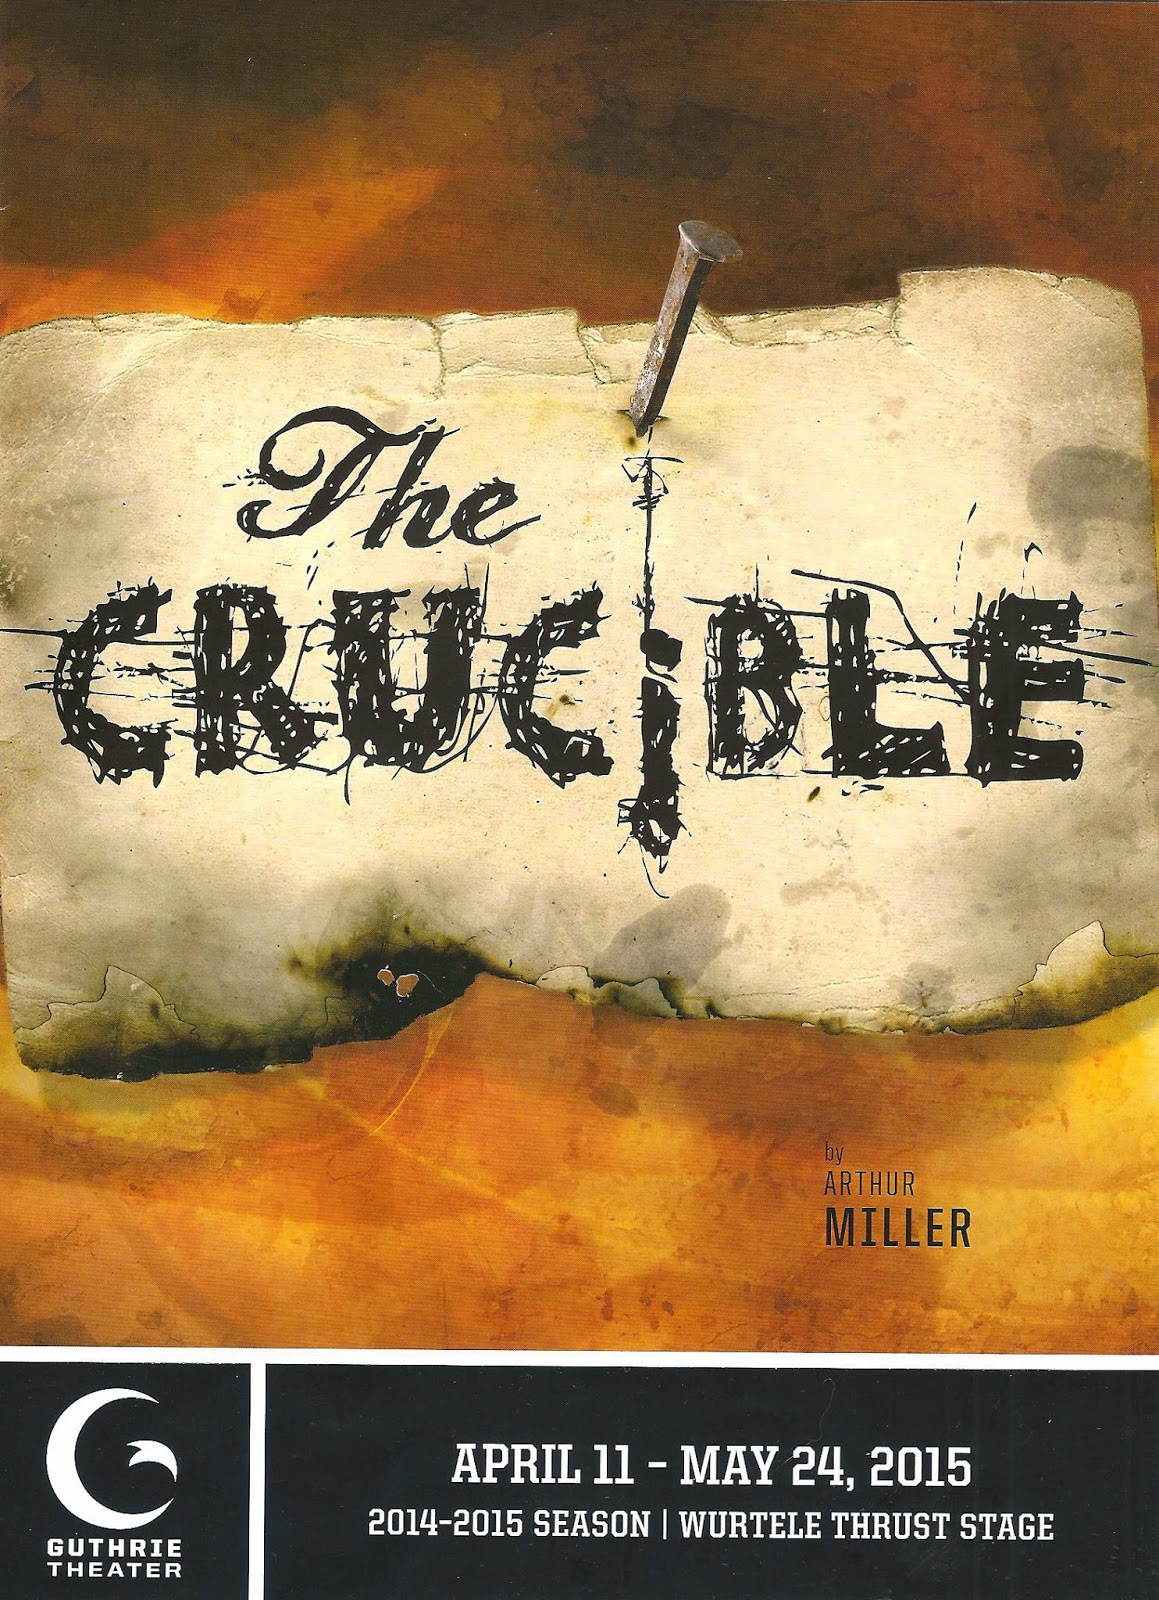 the good versus evil in the crucible by arthur miller Undeniably, the crucible is a play demonstrating good vs evil the principal characters, abigail williams, john proctor, ann putnam and marry warren all contain in these elements of good and bad the drama contained many scenarios of good versus bad, and the personalities that normally owned these feelings and goals.